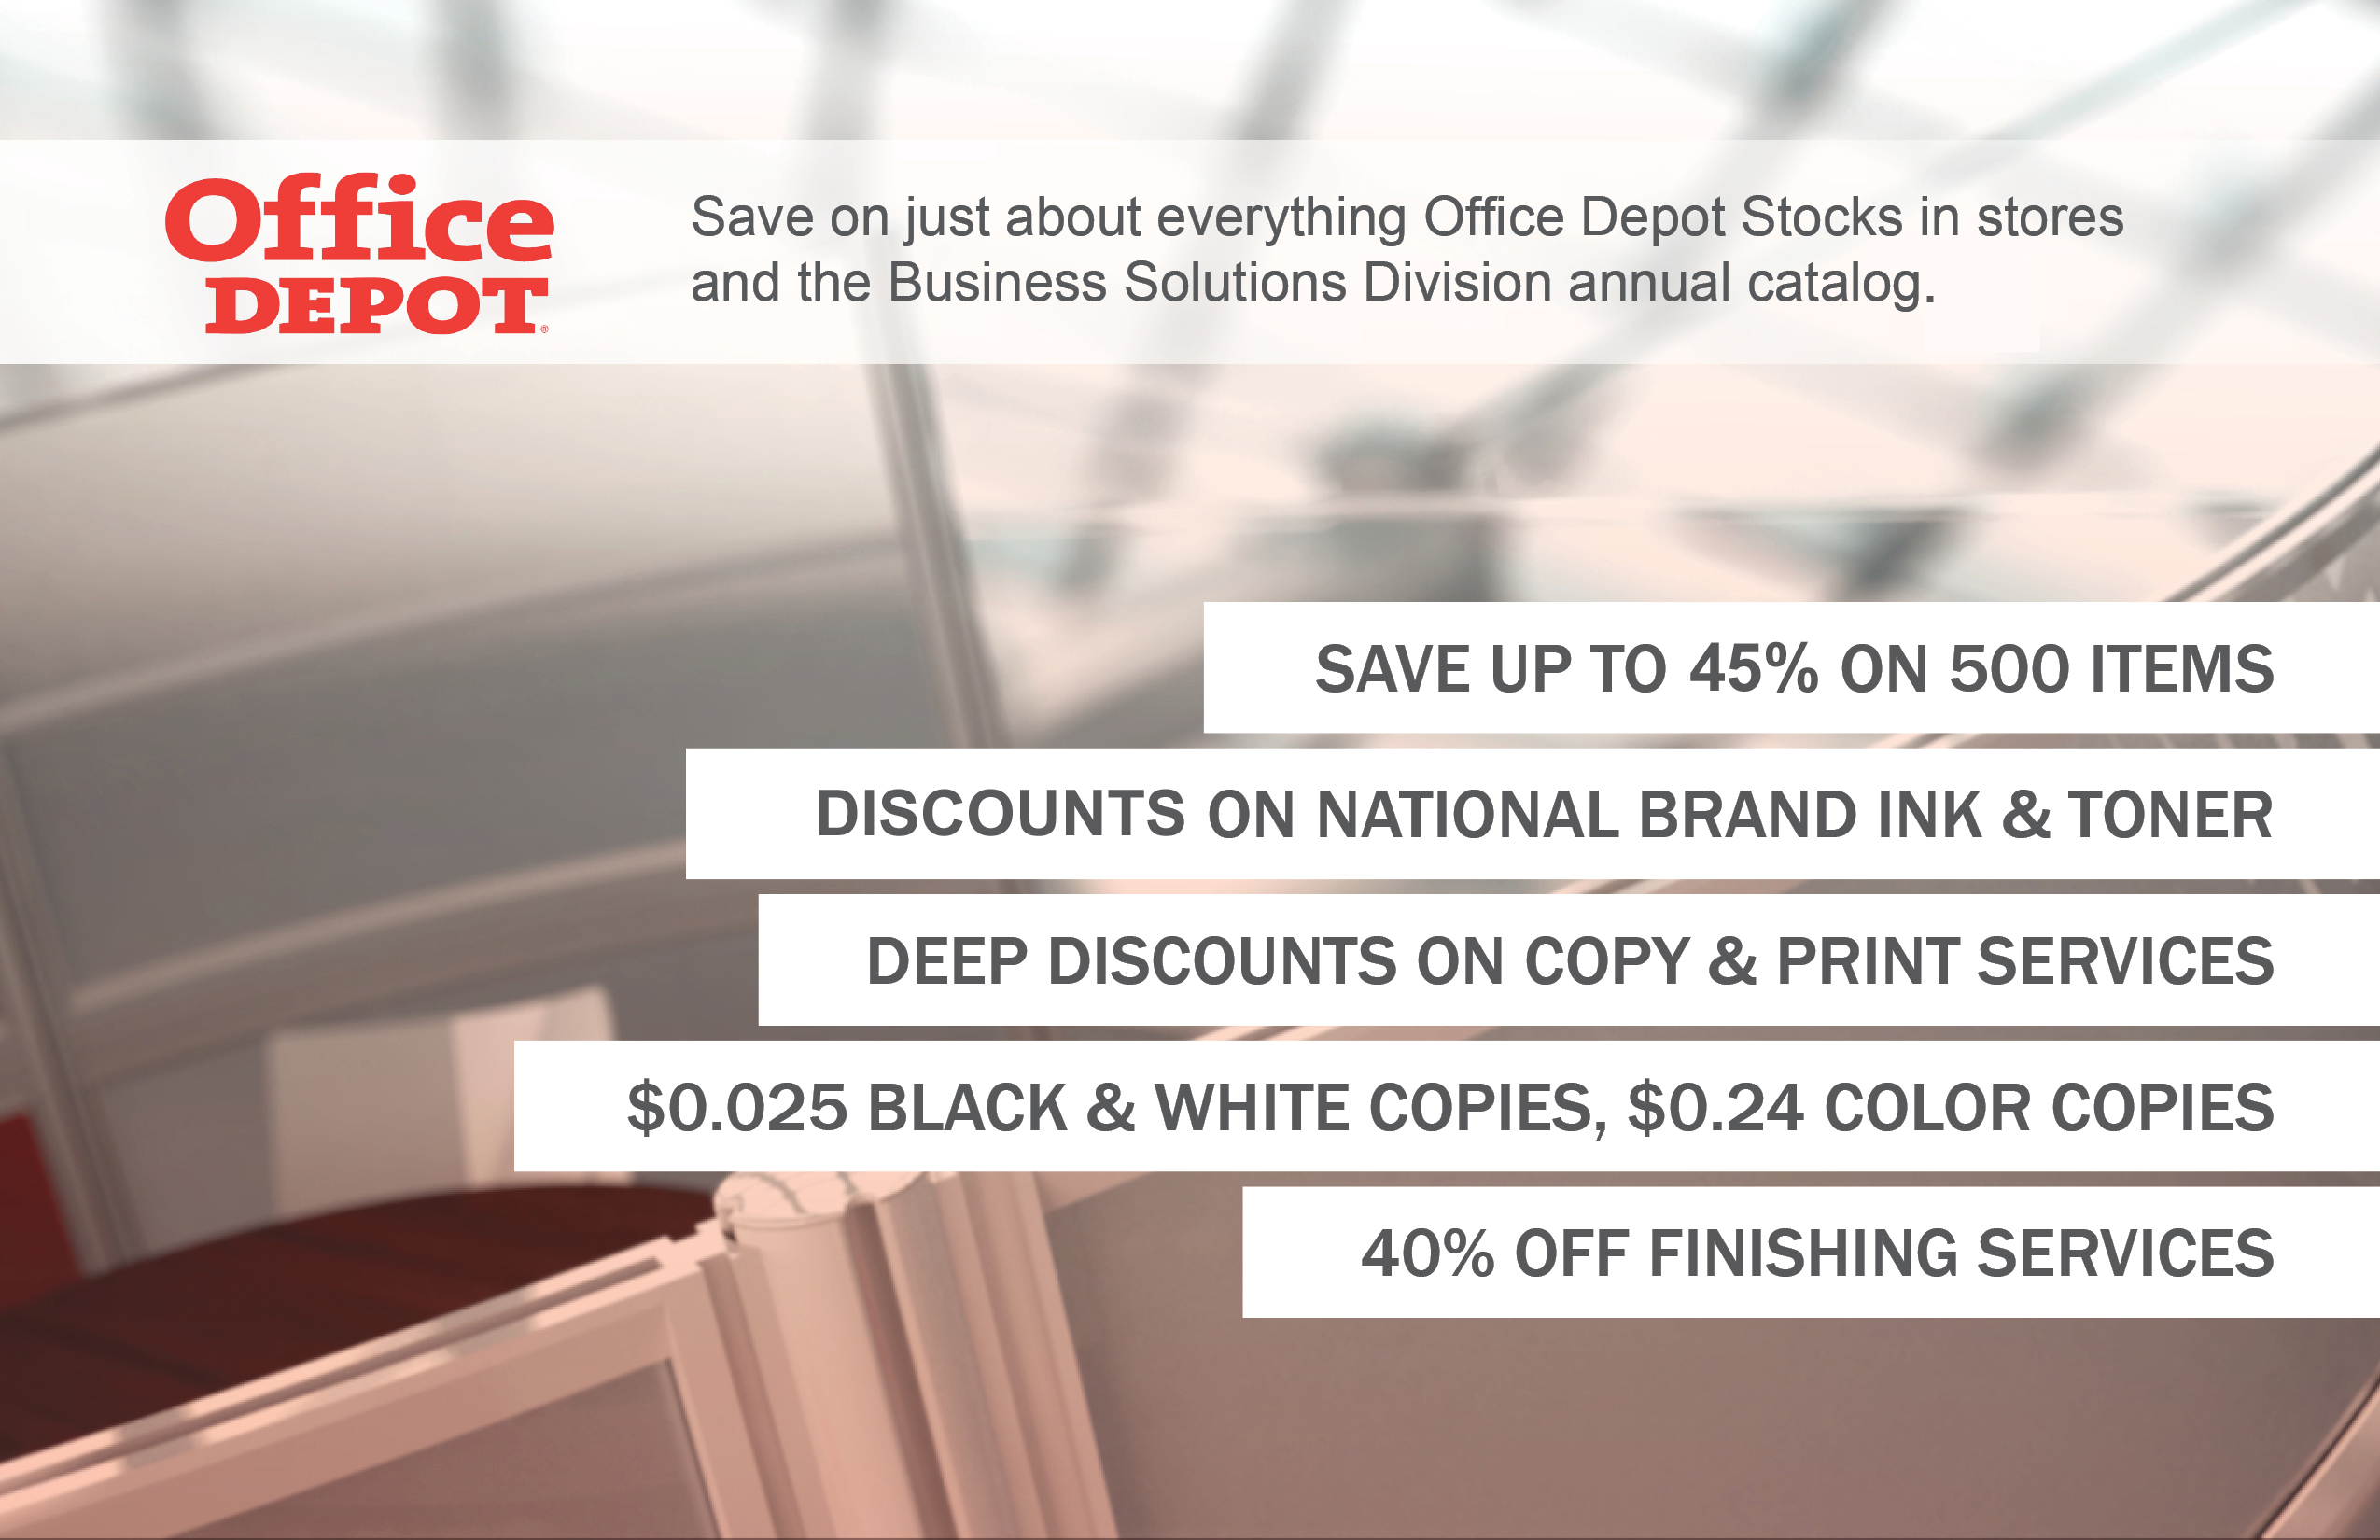 Limit Supply Expenses With Office Depot